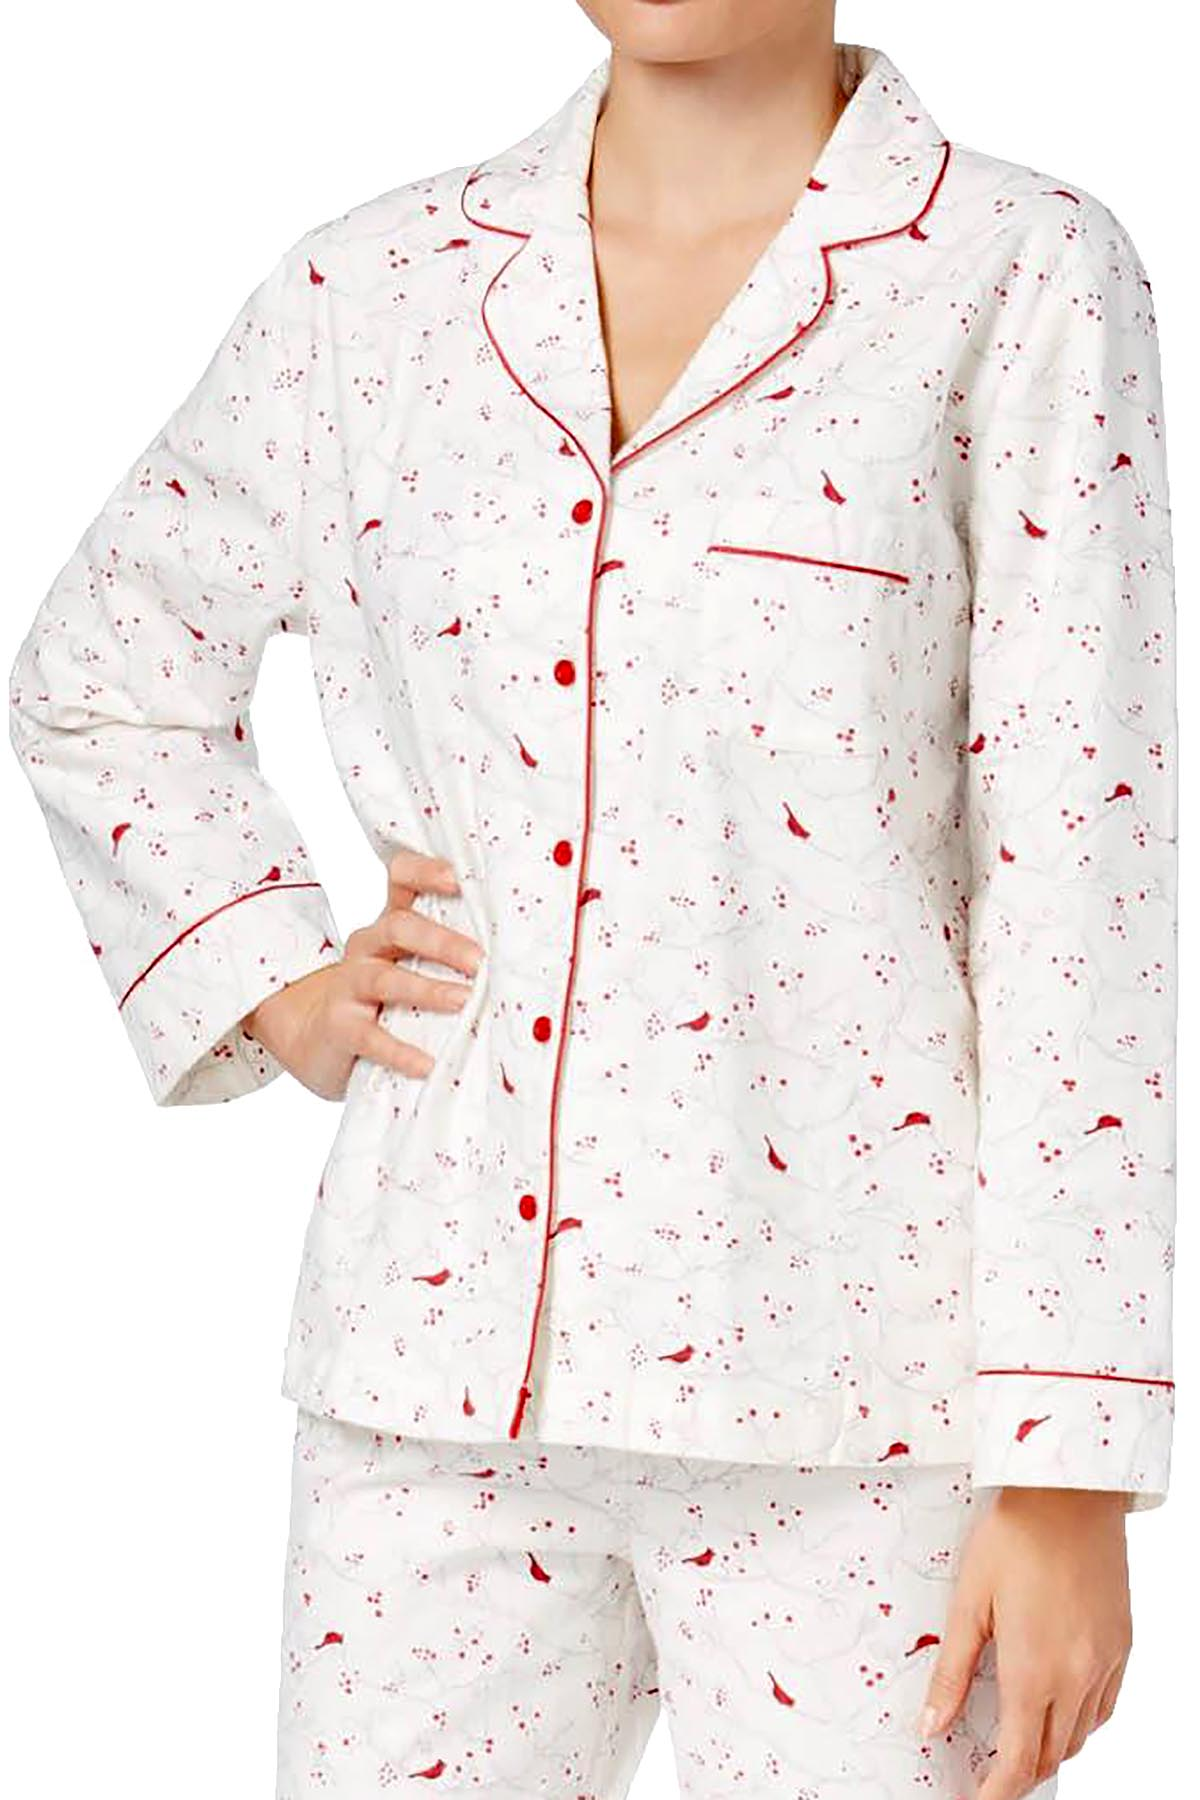 Charter Club Intimates Cardinal-Printed Cotton/Flannel Pajama Top